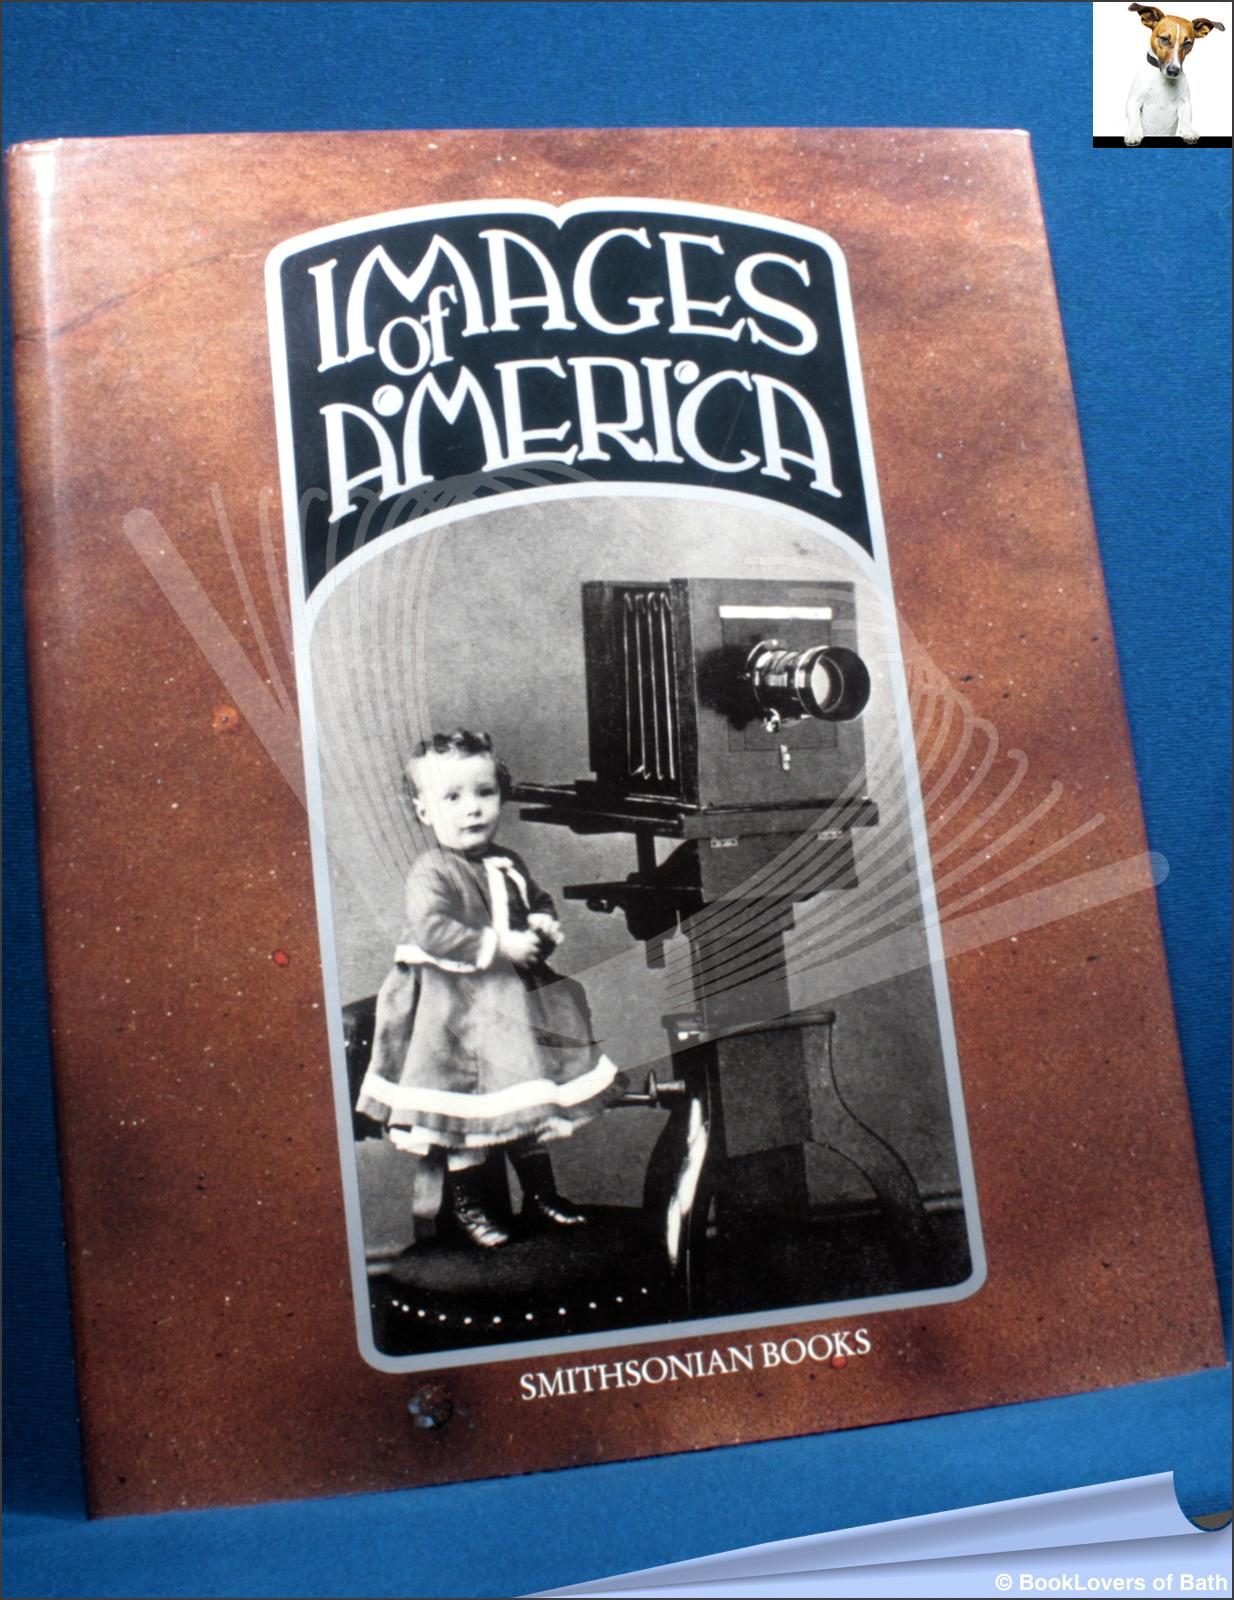 Images of America - ANON